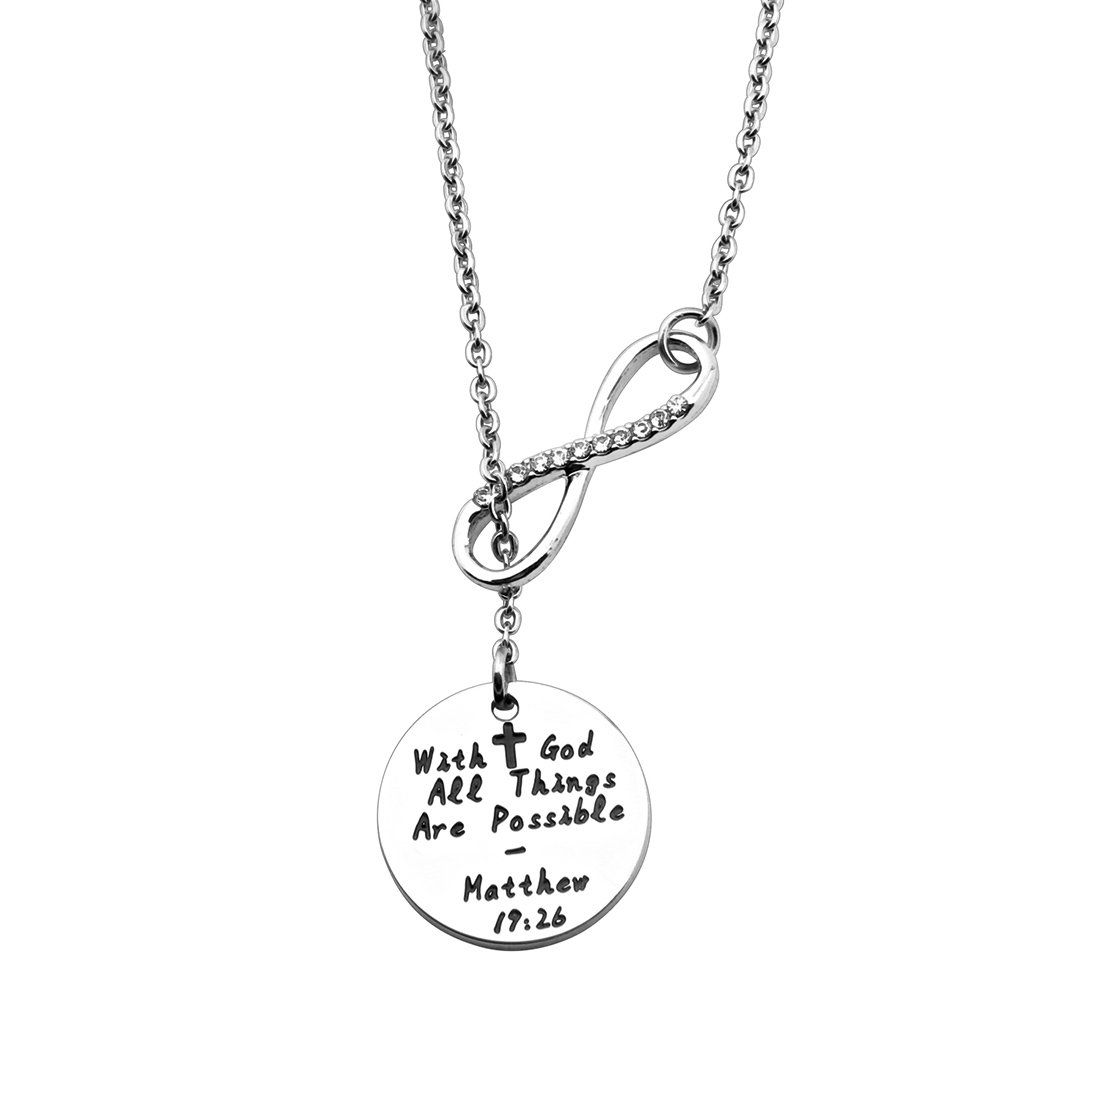 WUSUANED With God All Things are Possible Infinity Cross Necklace Religious Jewelry Inspirational Gift (Infinity disc necklace)